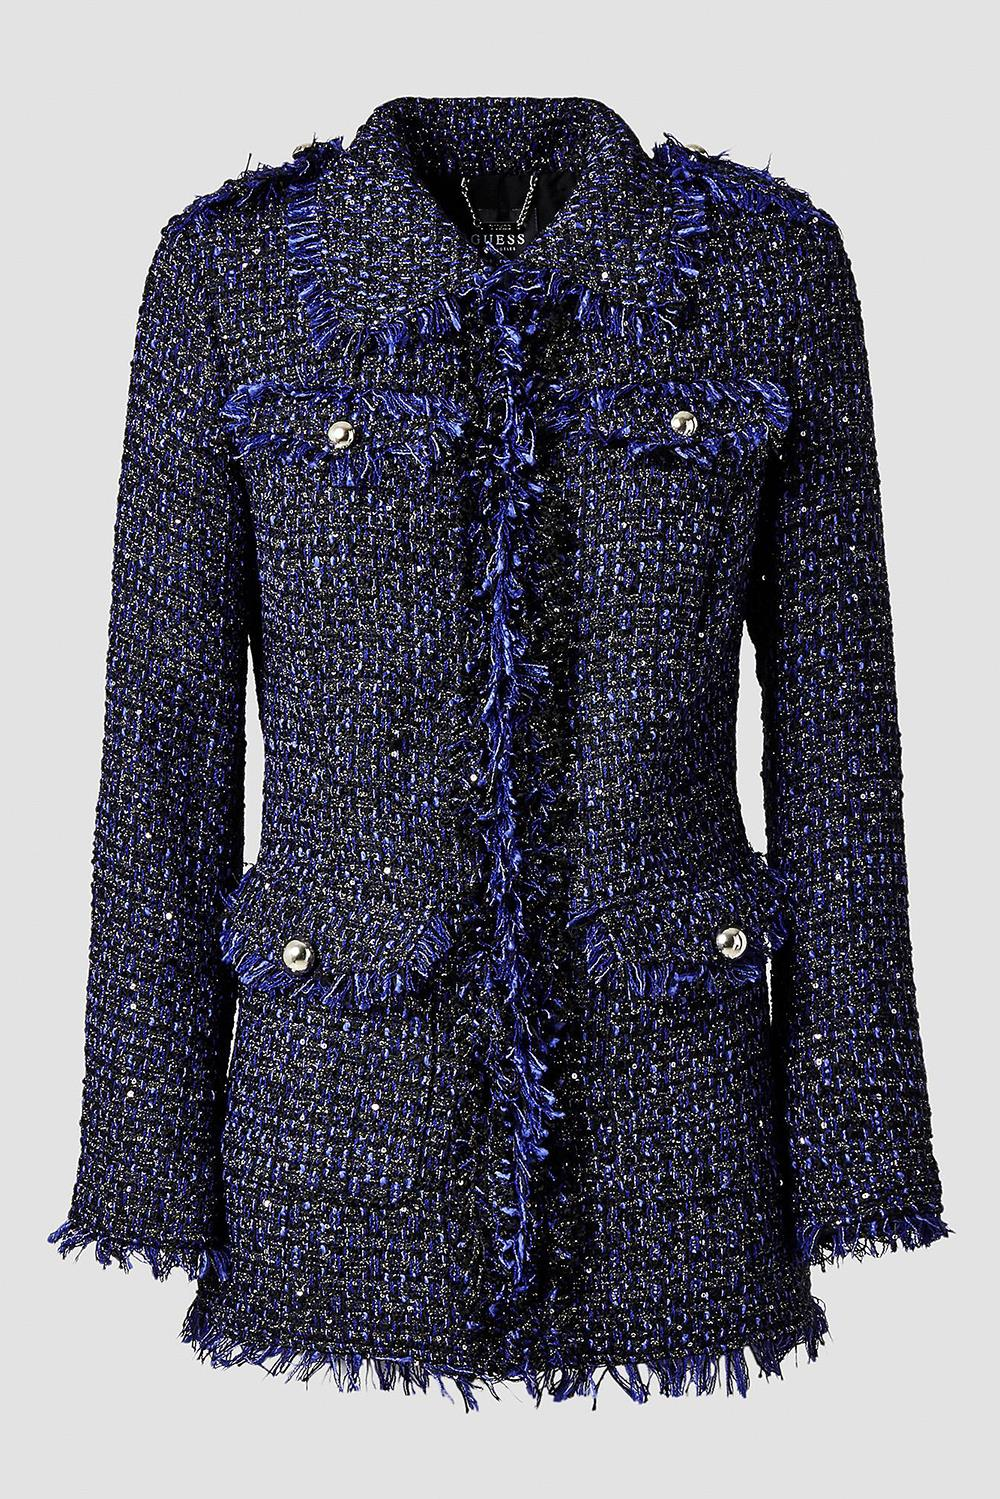 chaqueta-guess-tweed-invitada-boda. De tweed